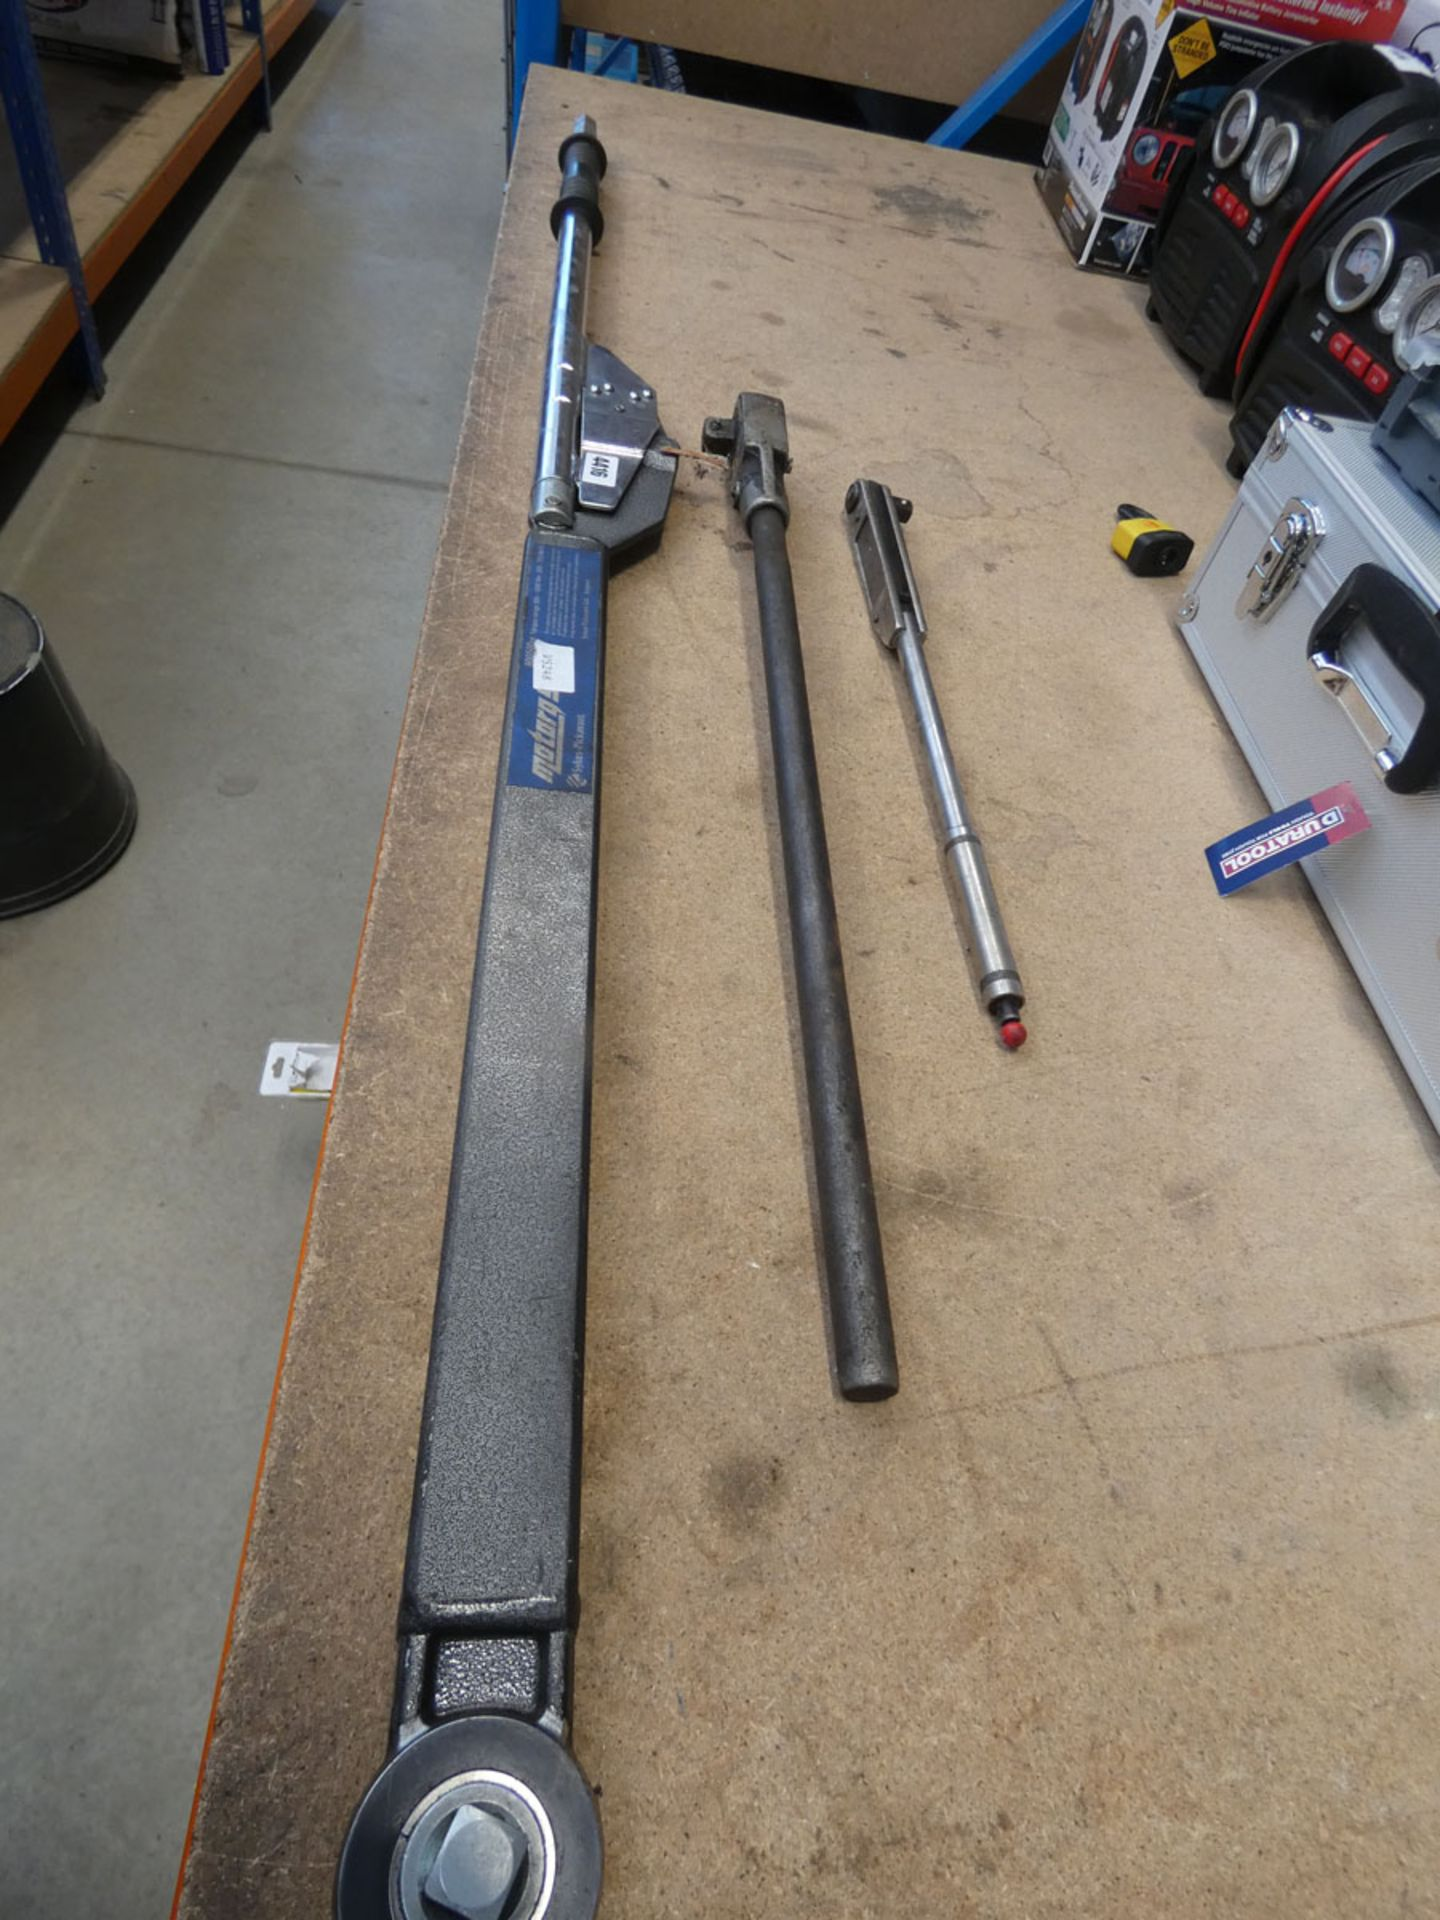 Sykes-Pickavant large torque wrench and 2 other wrenches - Image 2 of 2